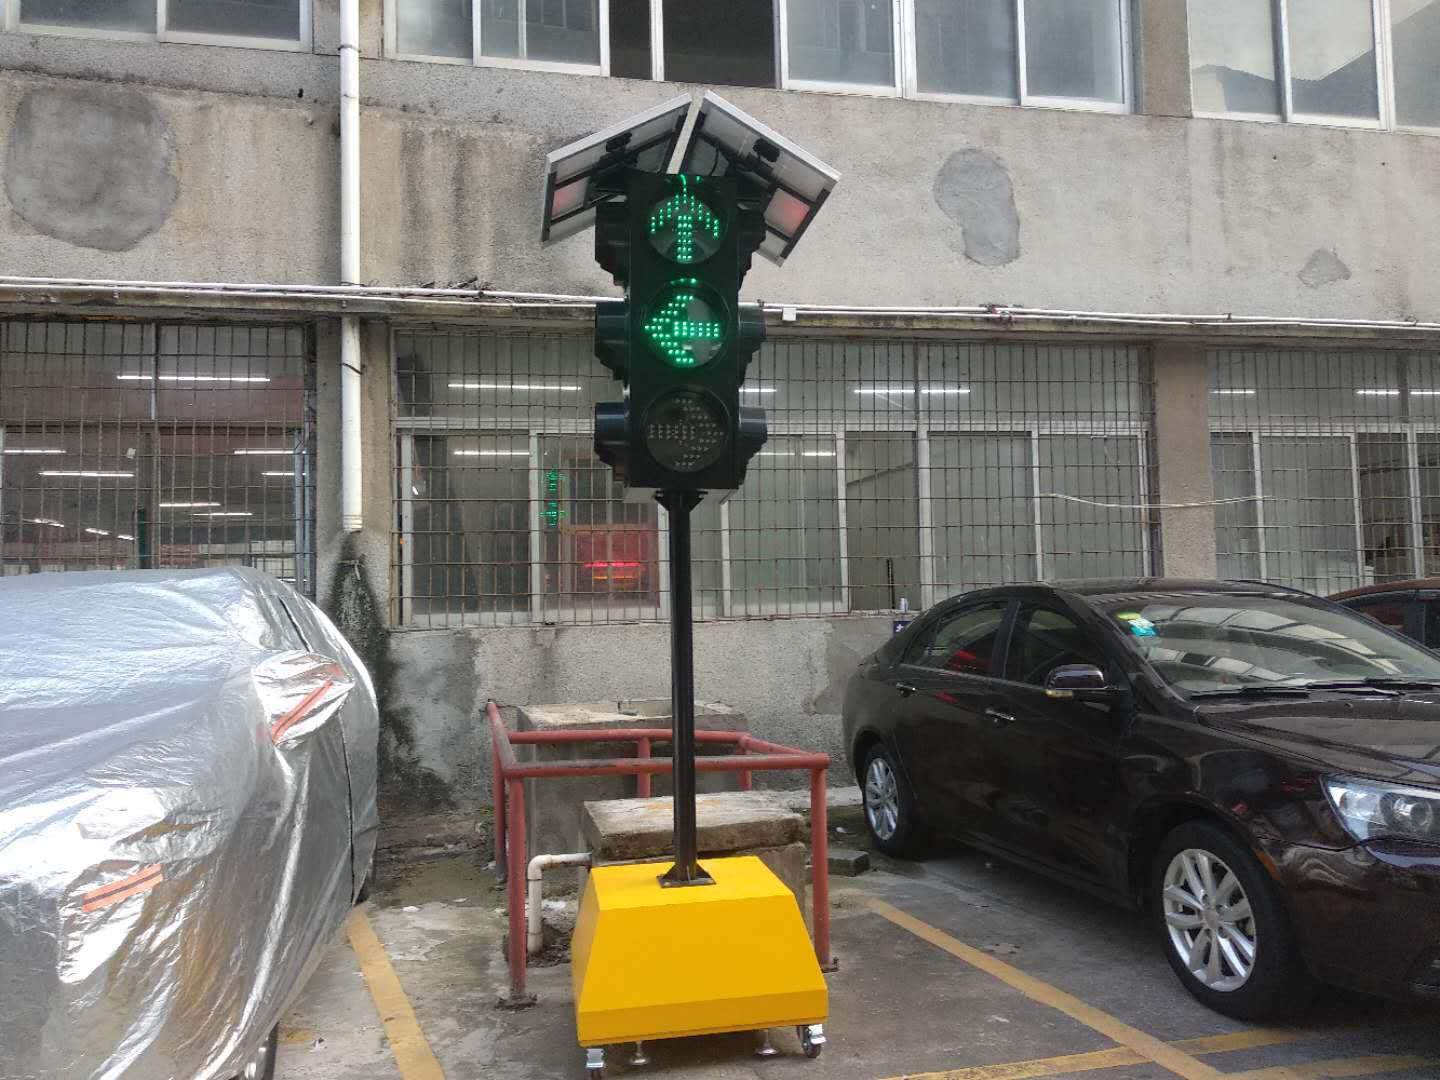 What are the working modes of the solar tri-color portable arrow traffic lights?